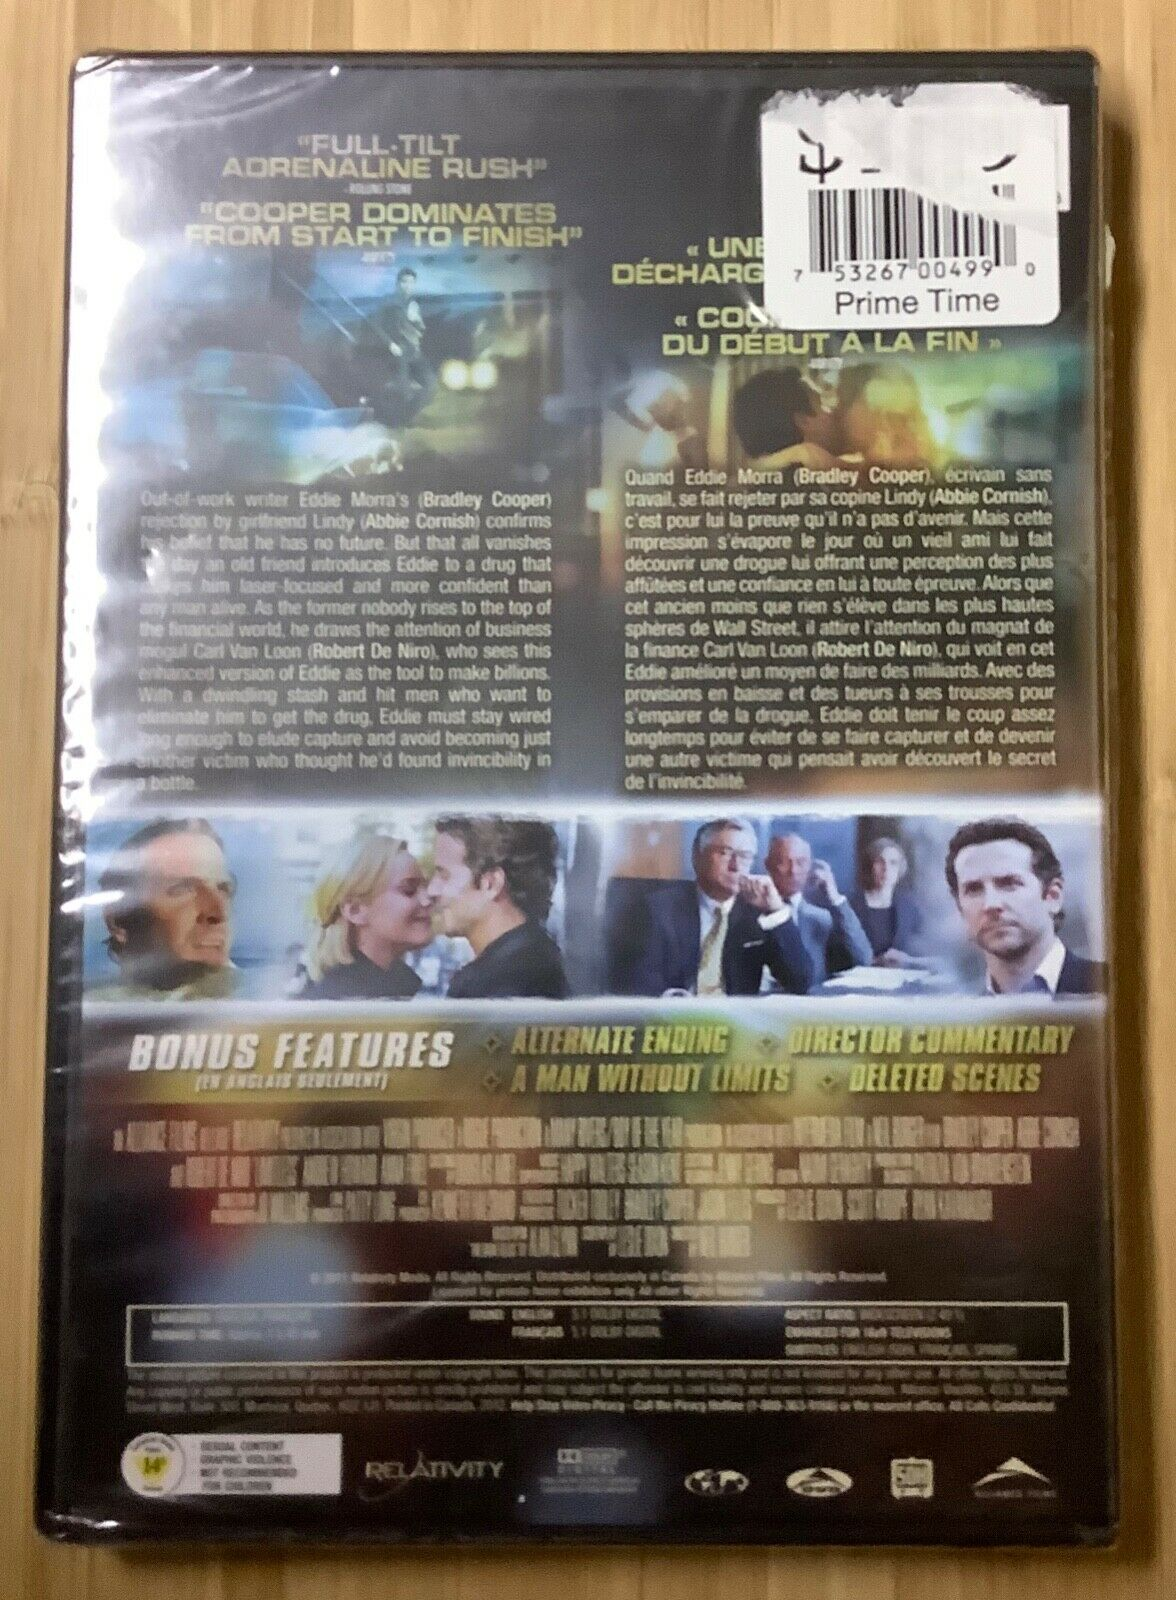 Limitless 2011 DVD Bradley Cooper Robert De Niro Abbie Cornish NEW SEALED - $10.00